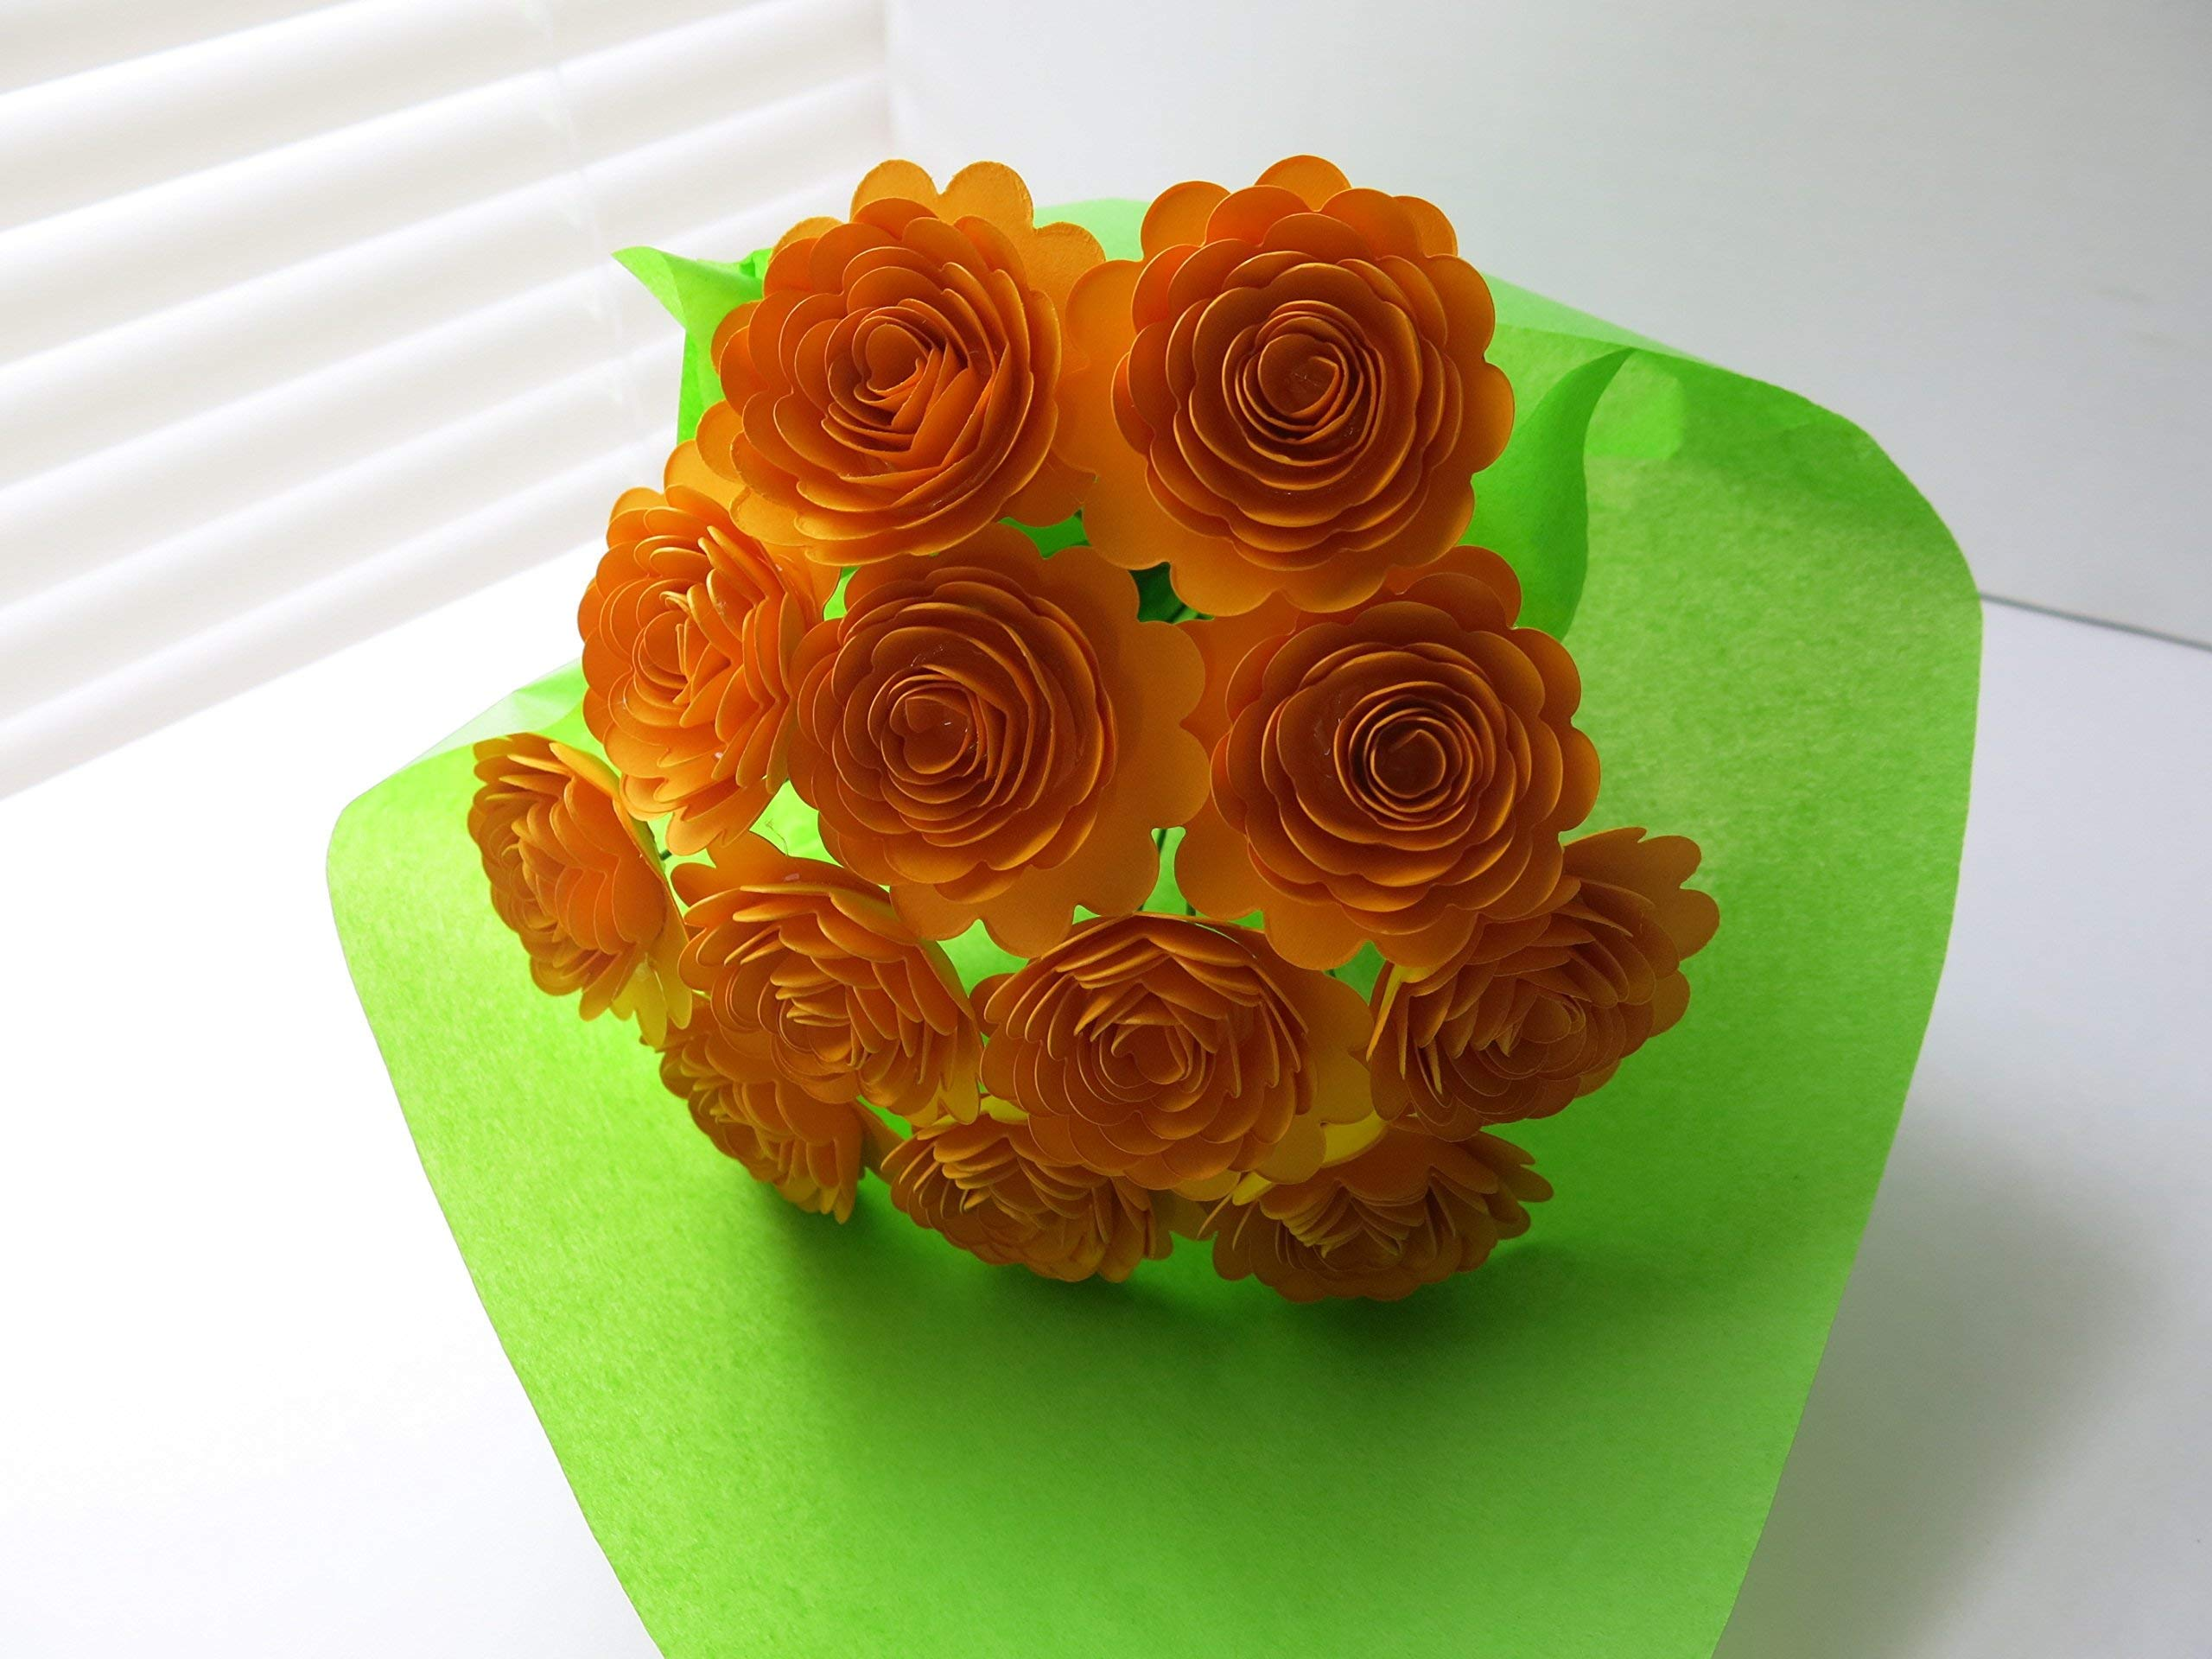 Gold-Carnations-on-Stems-Fall-Bouquet-of-12-Scalloped-Paper-Roses-15-Flowers-Autumn-Thanksgiving